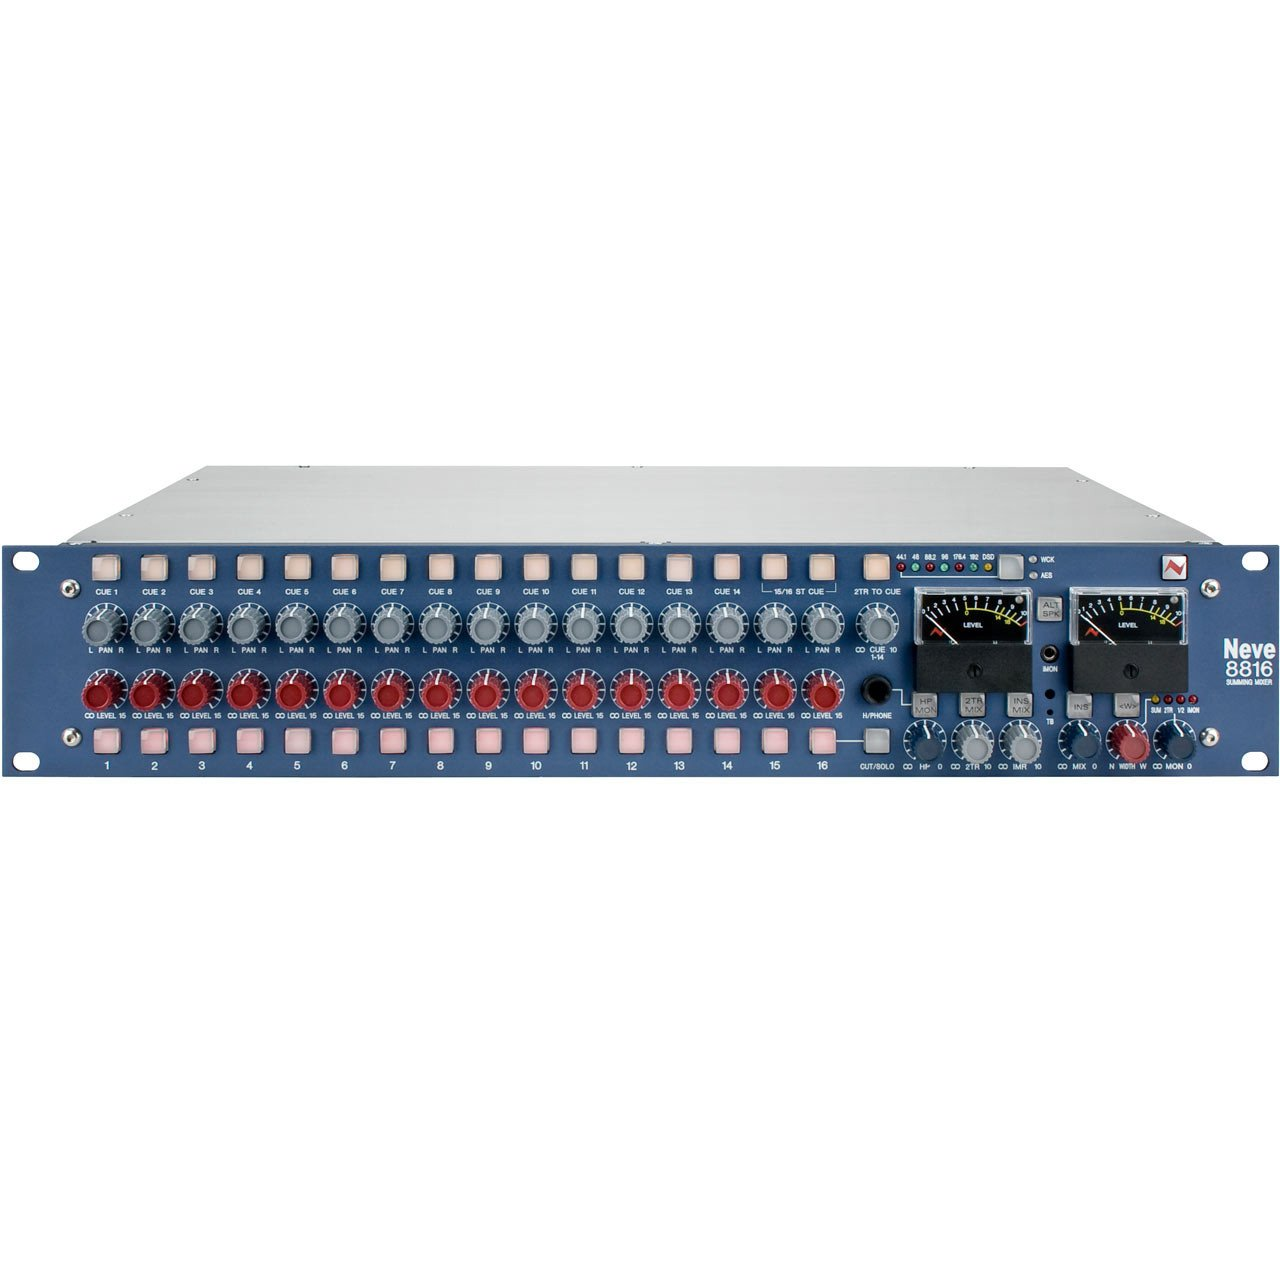 Summing Mixers - Neve AMS 8816 Summing Mixer